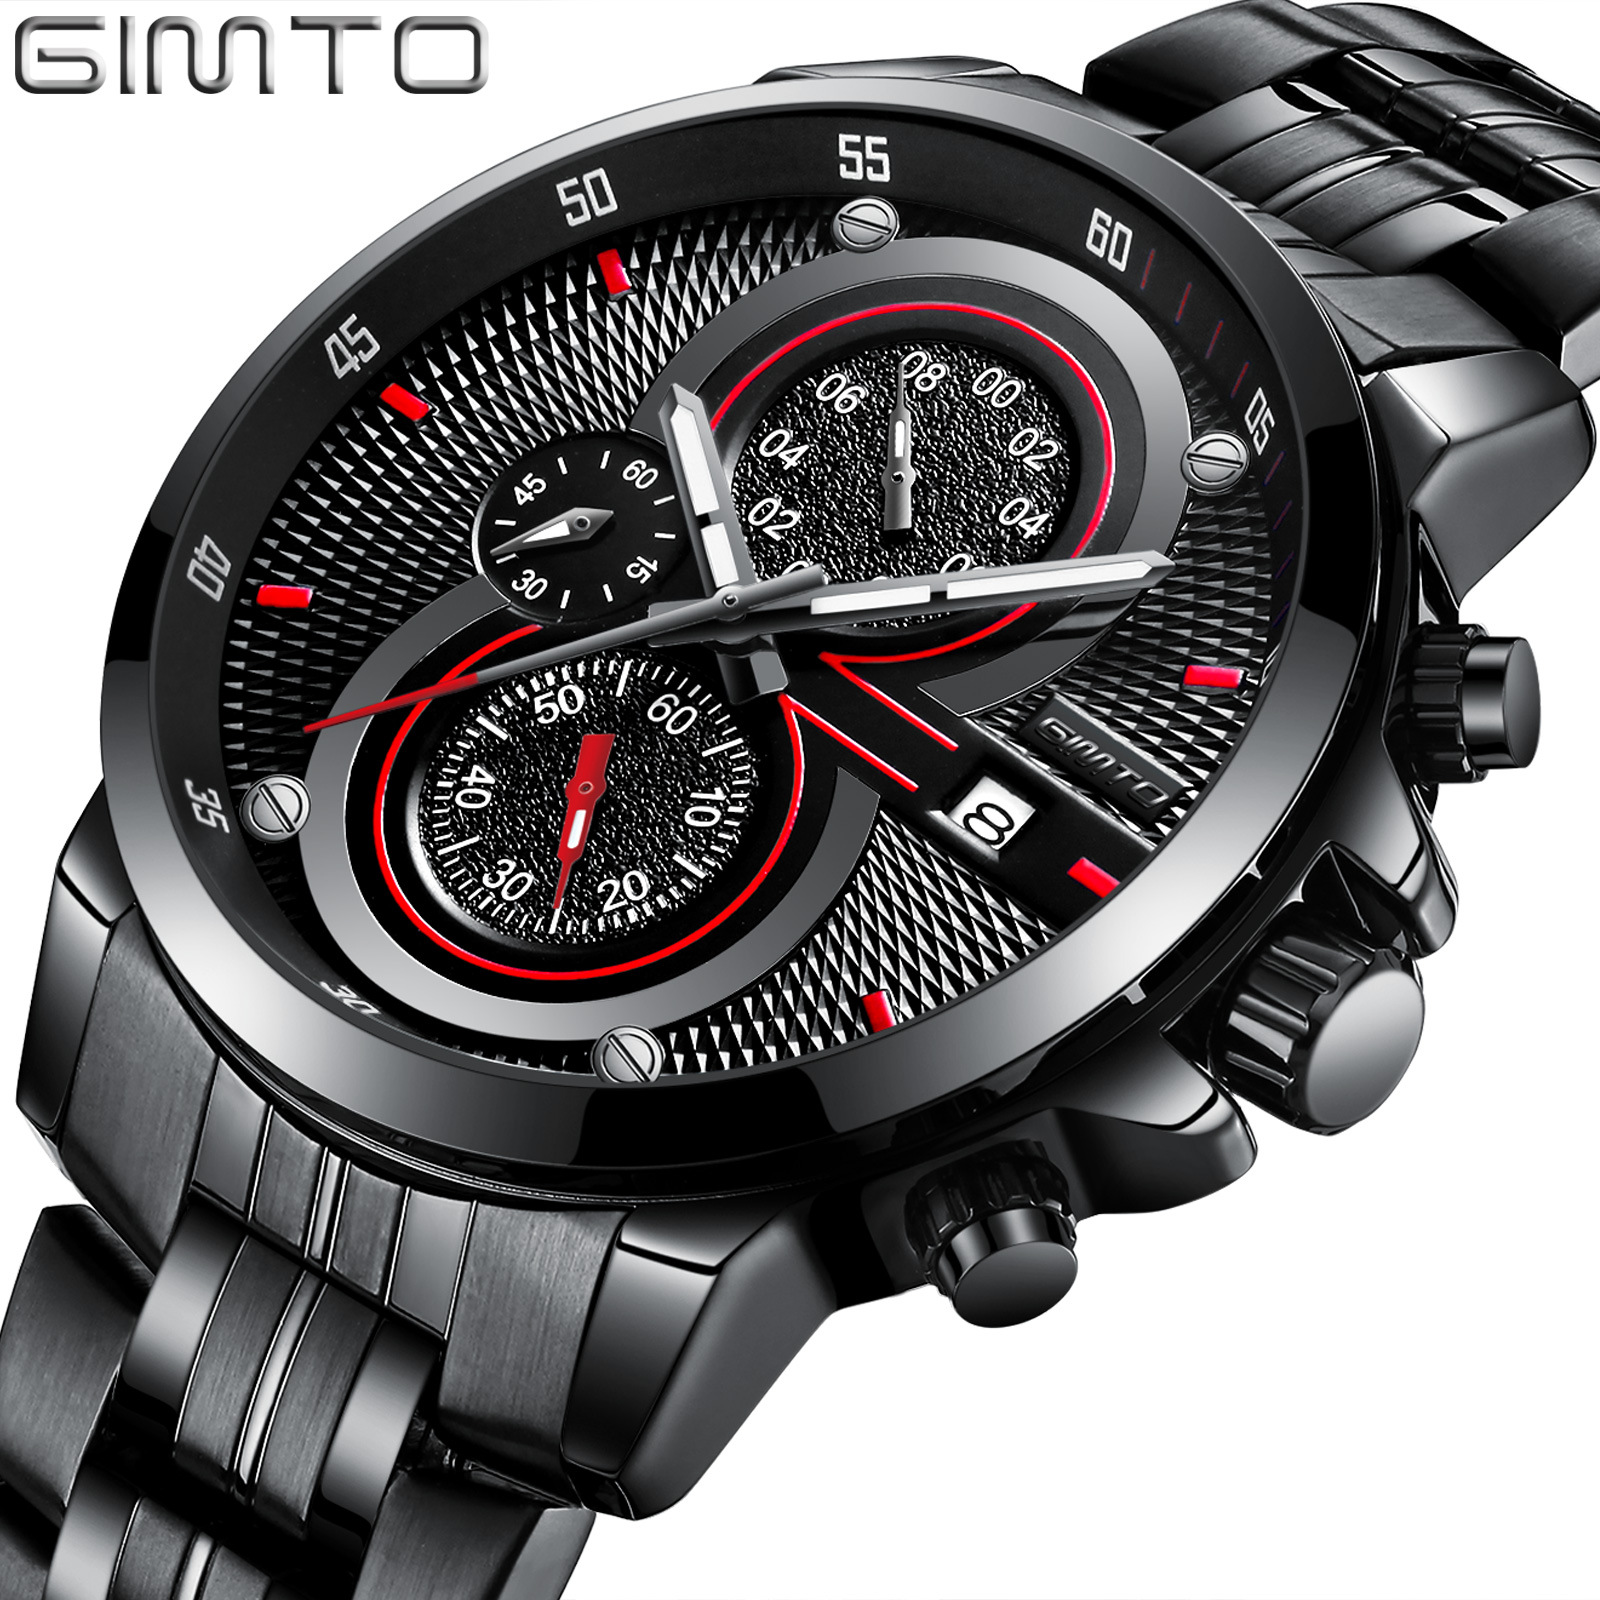 Buy GIMTO Cool Sport Watch Men Stainless Steel Band Luxury Black Military Quartz Watches Male Waterproof Casual Relogio Masculino for only 48.02 USD